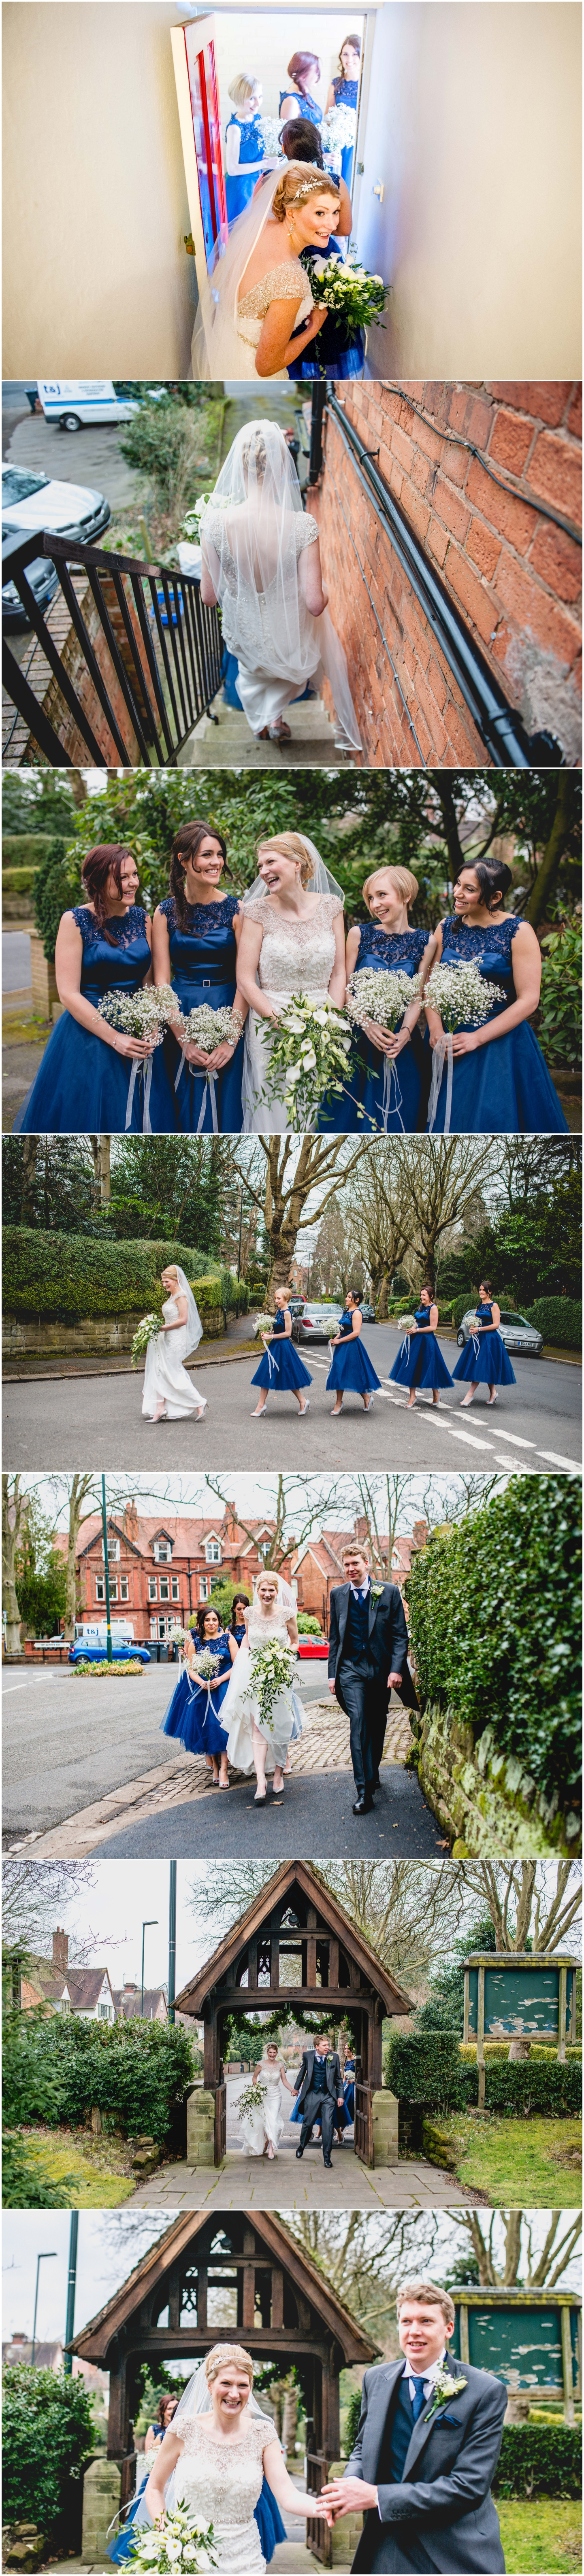 Pendrell Hall Wedding Photography by Lisa Carpenter Photography, West Midlands photographer, bridesmaids in blue